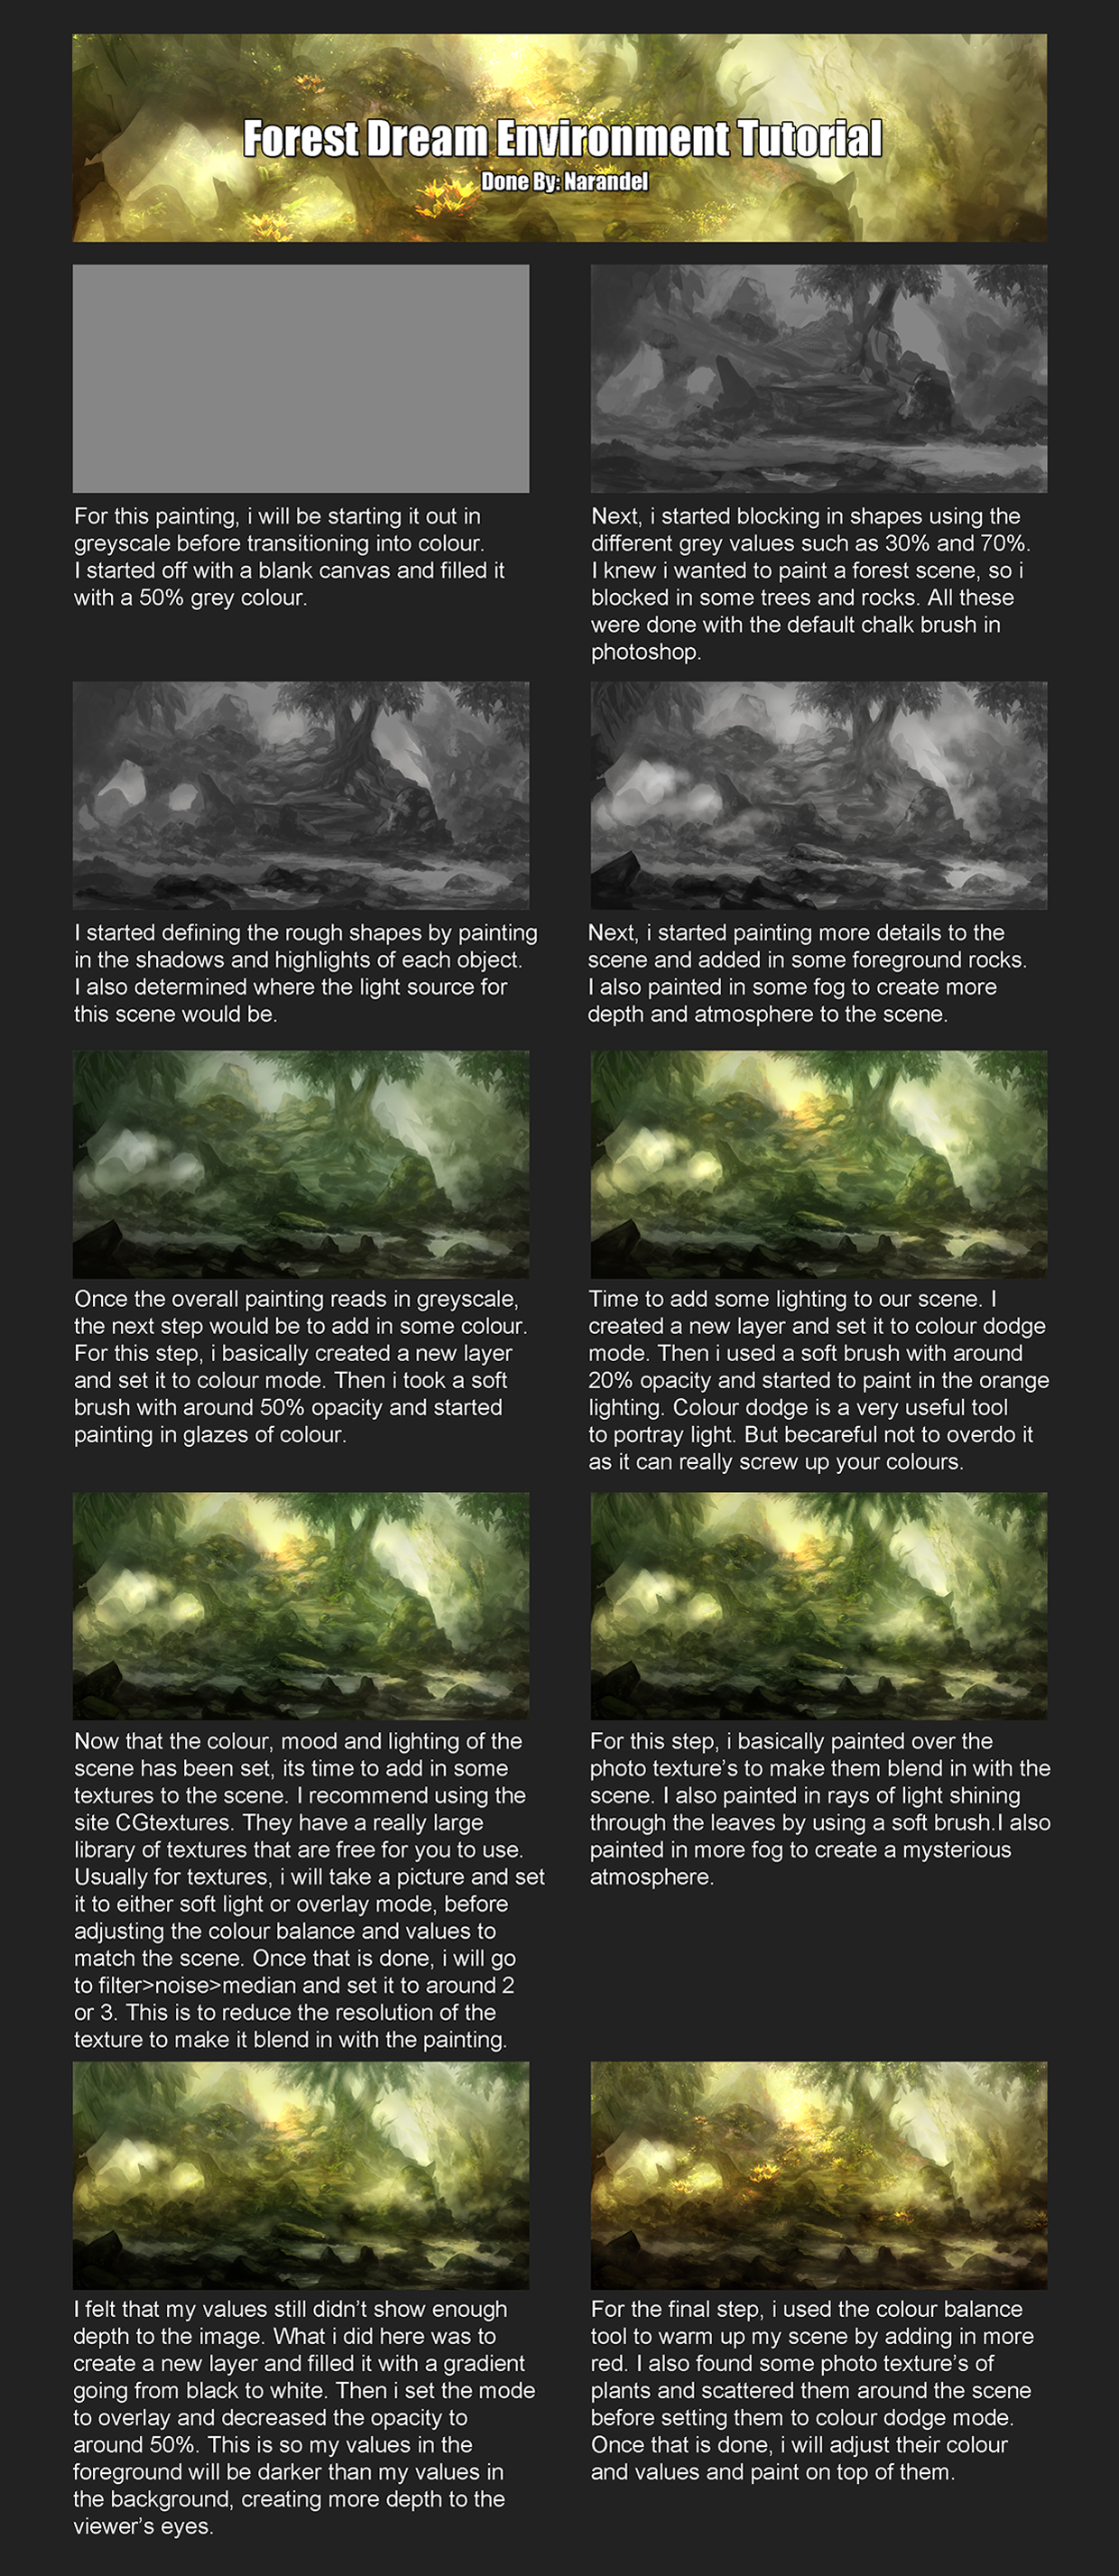 Forest Dream Environment Tutorial by Narandel